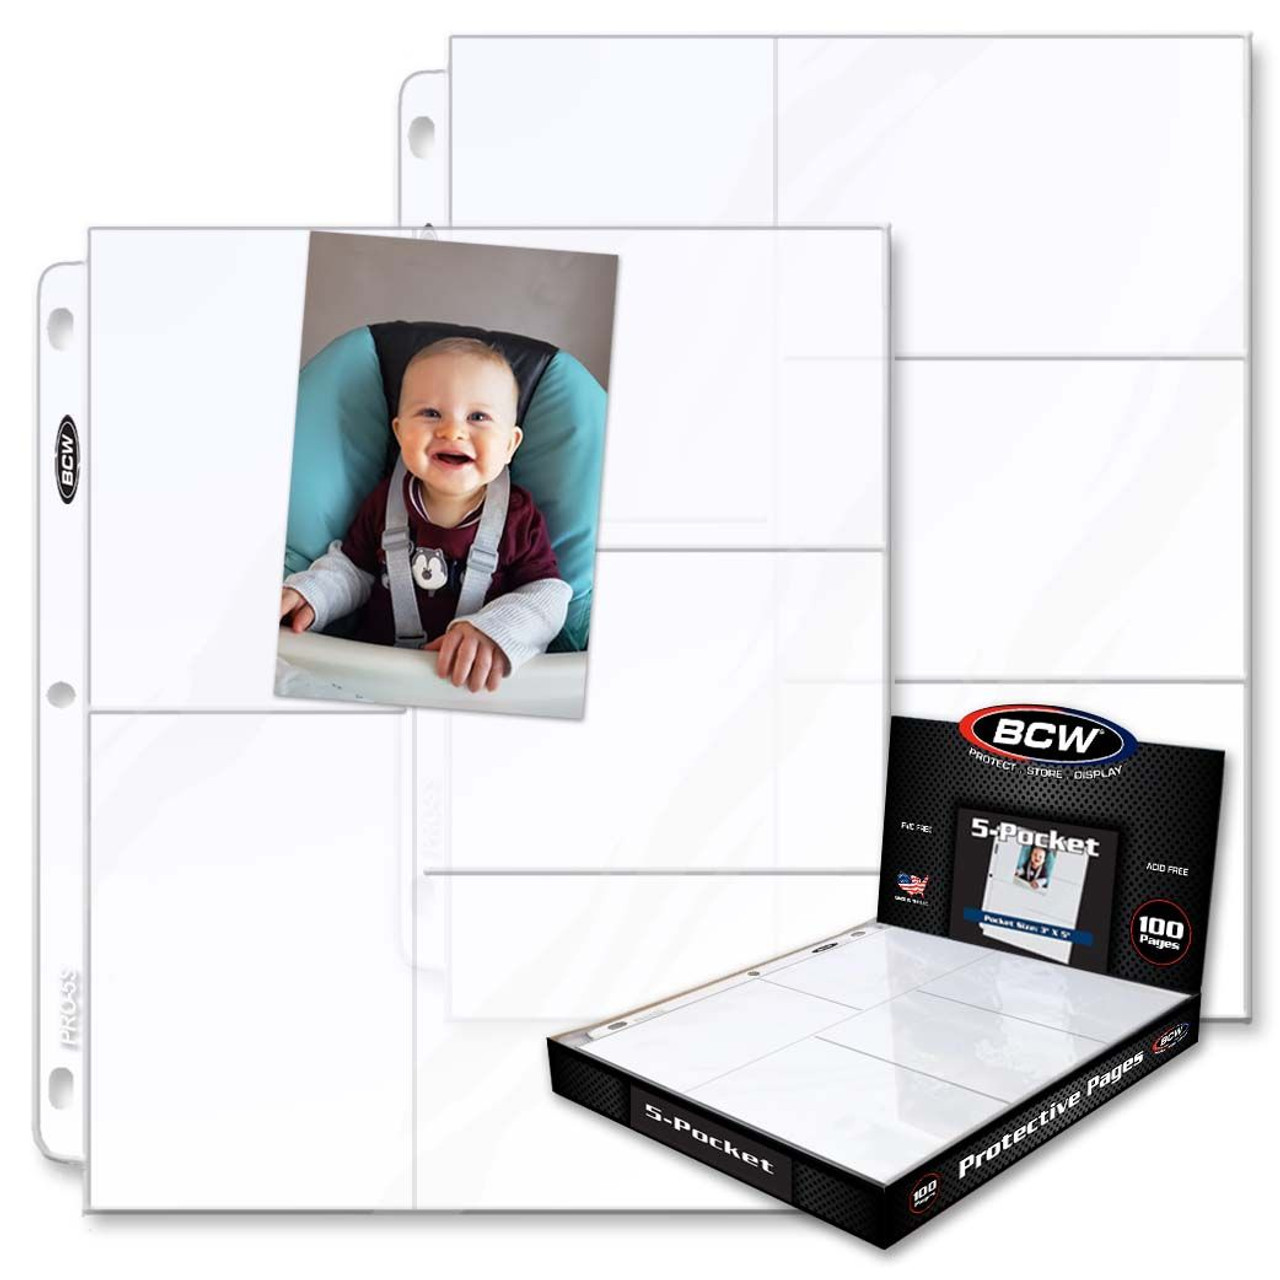 BCW Pro 5-Pocket Pages 100ct Box / Case of 10